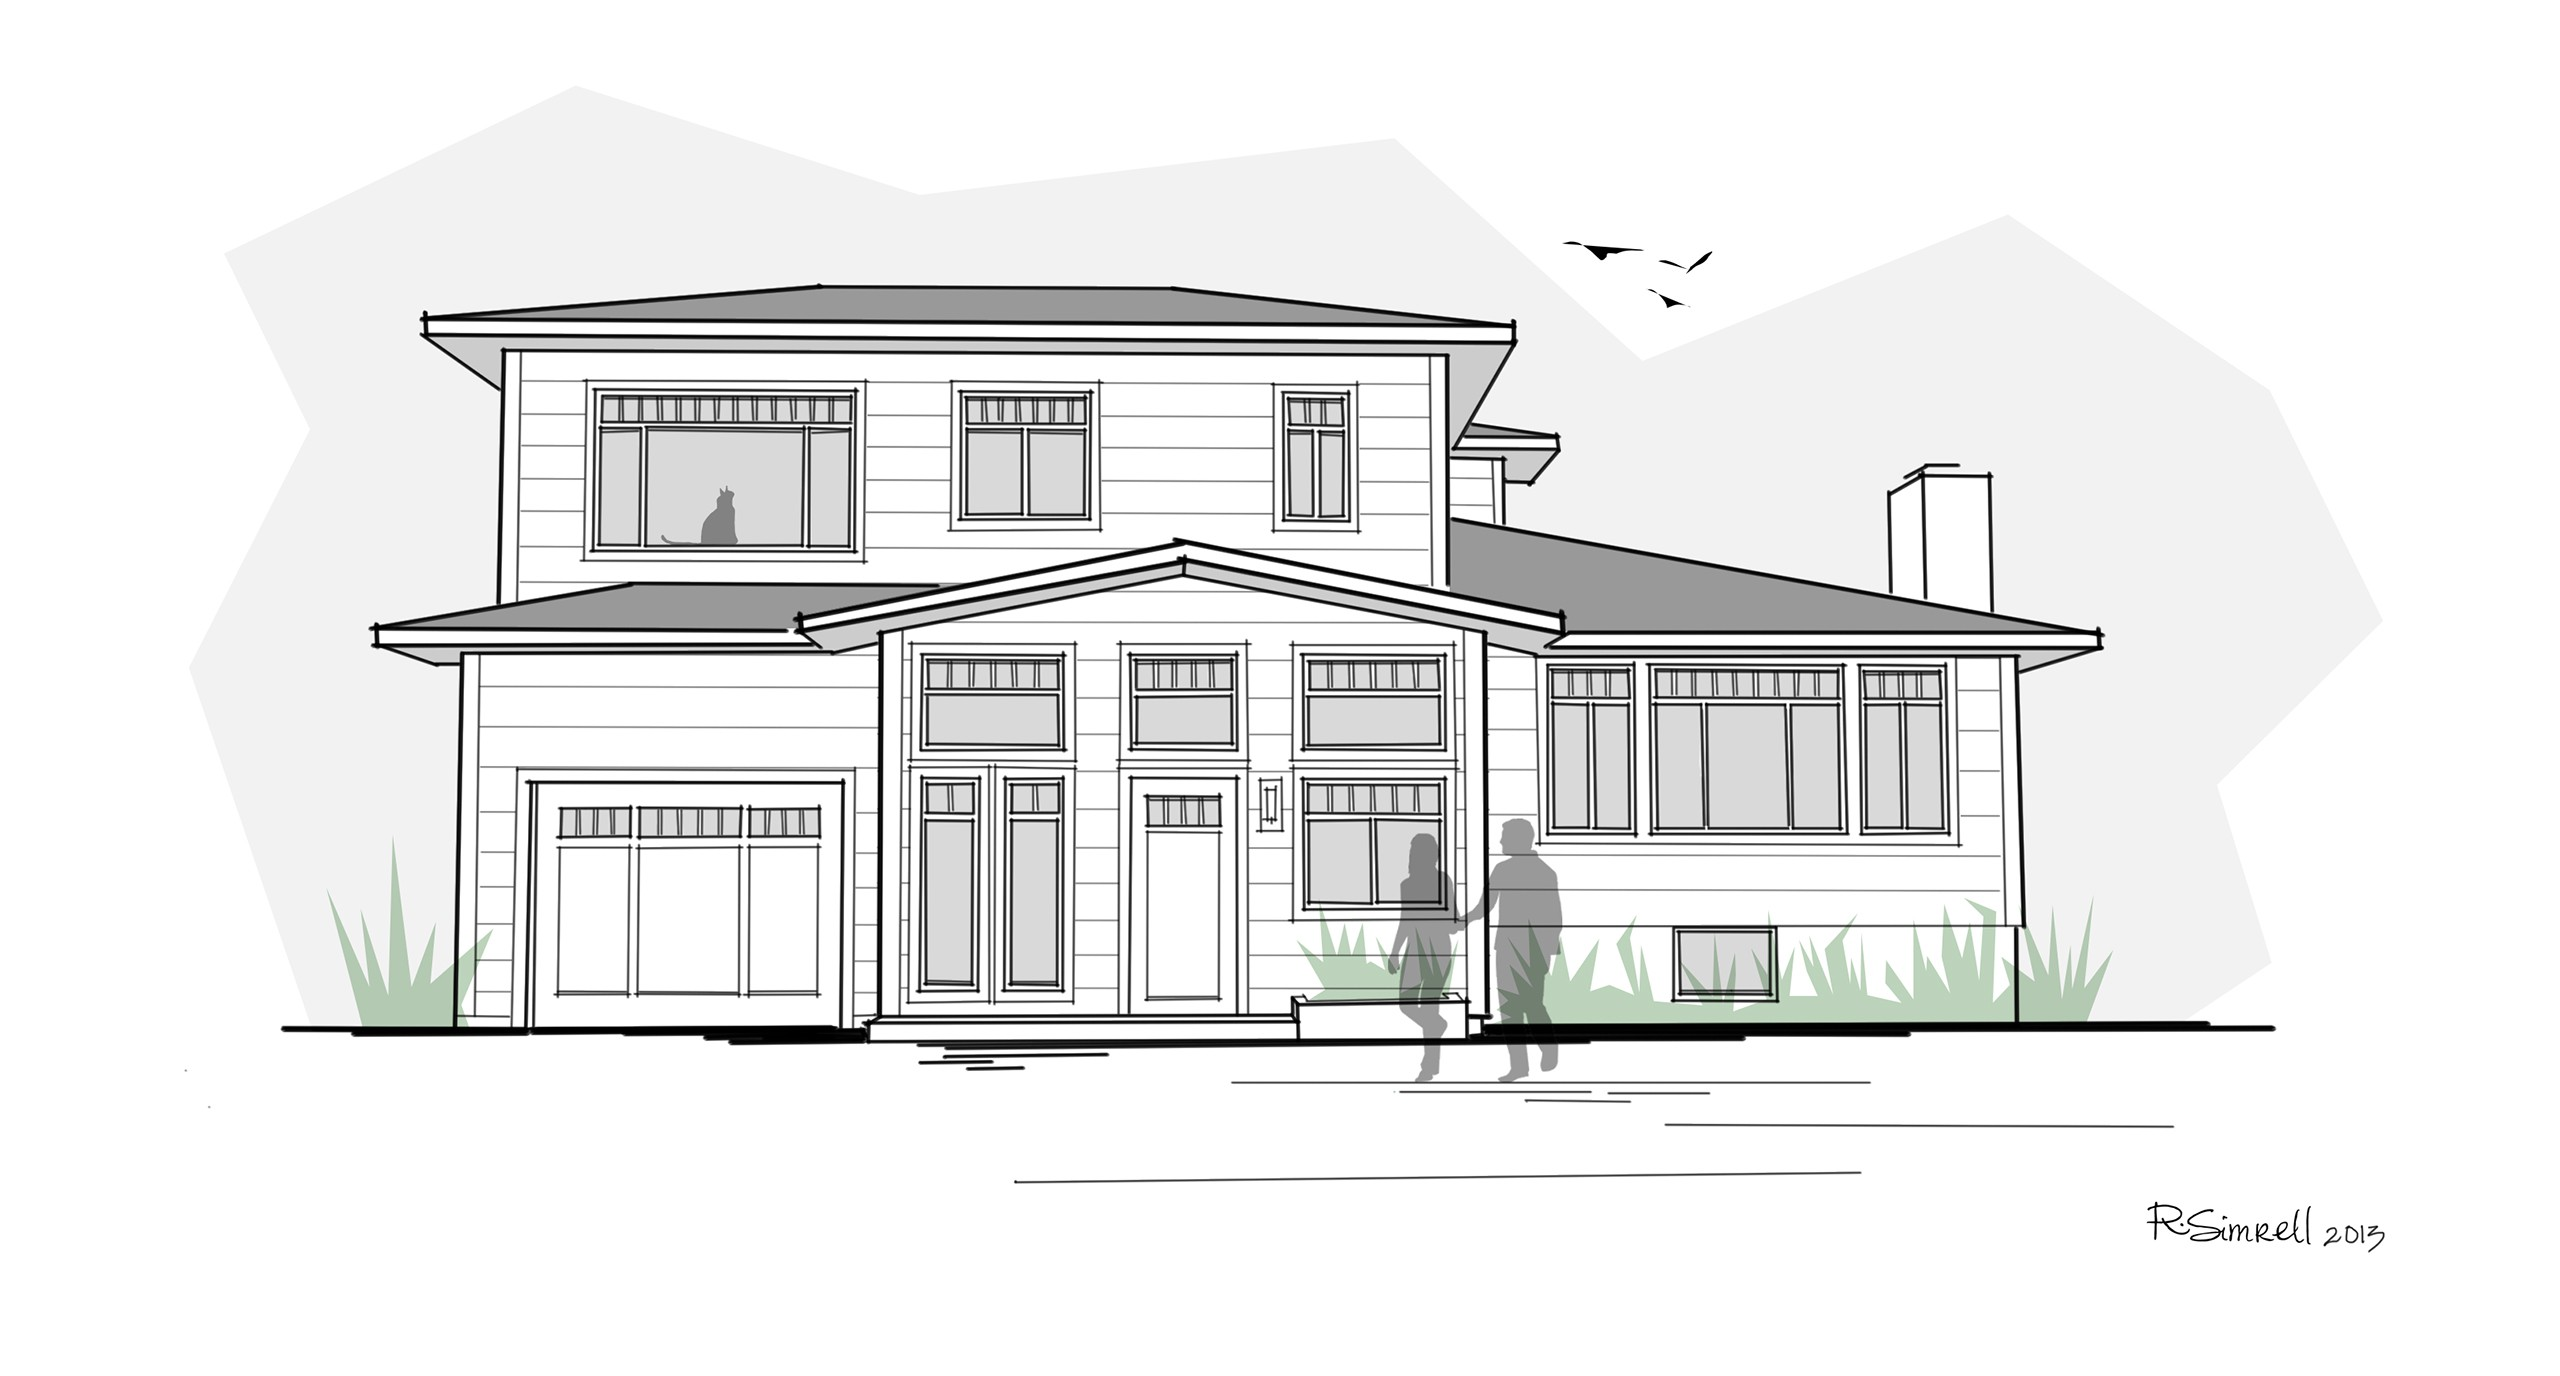 Home Design Sketch Early Design Sketches 92nd Street Remodel Addition Emerald Seven